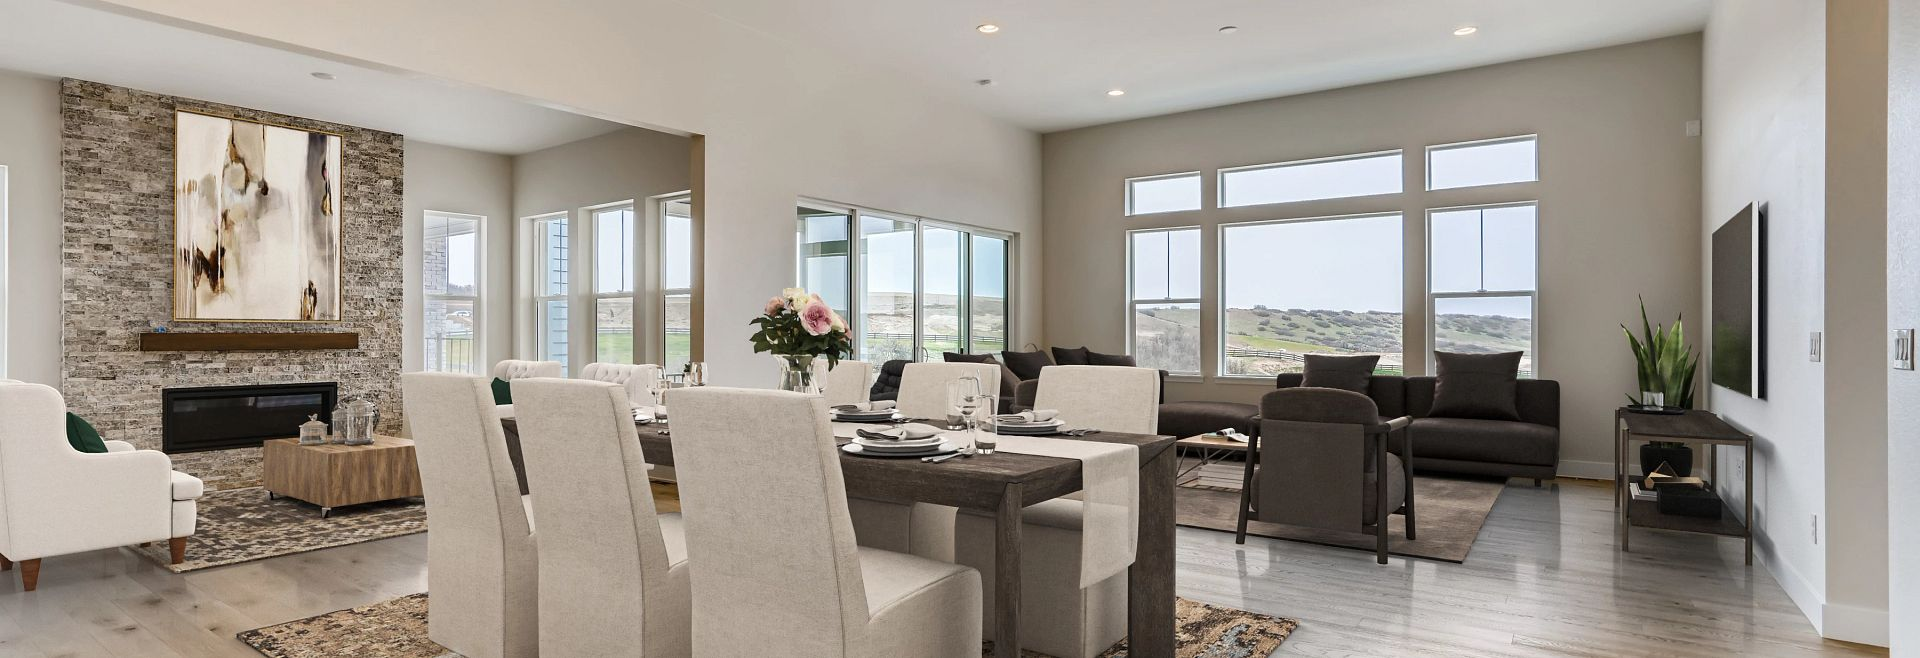 Canyons Retreat Haven QMI Lot 534 Dine, Great Room & Lounge